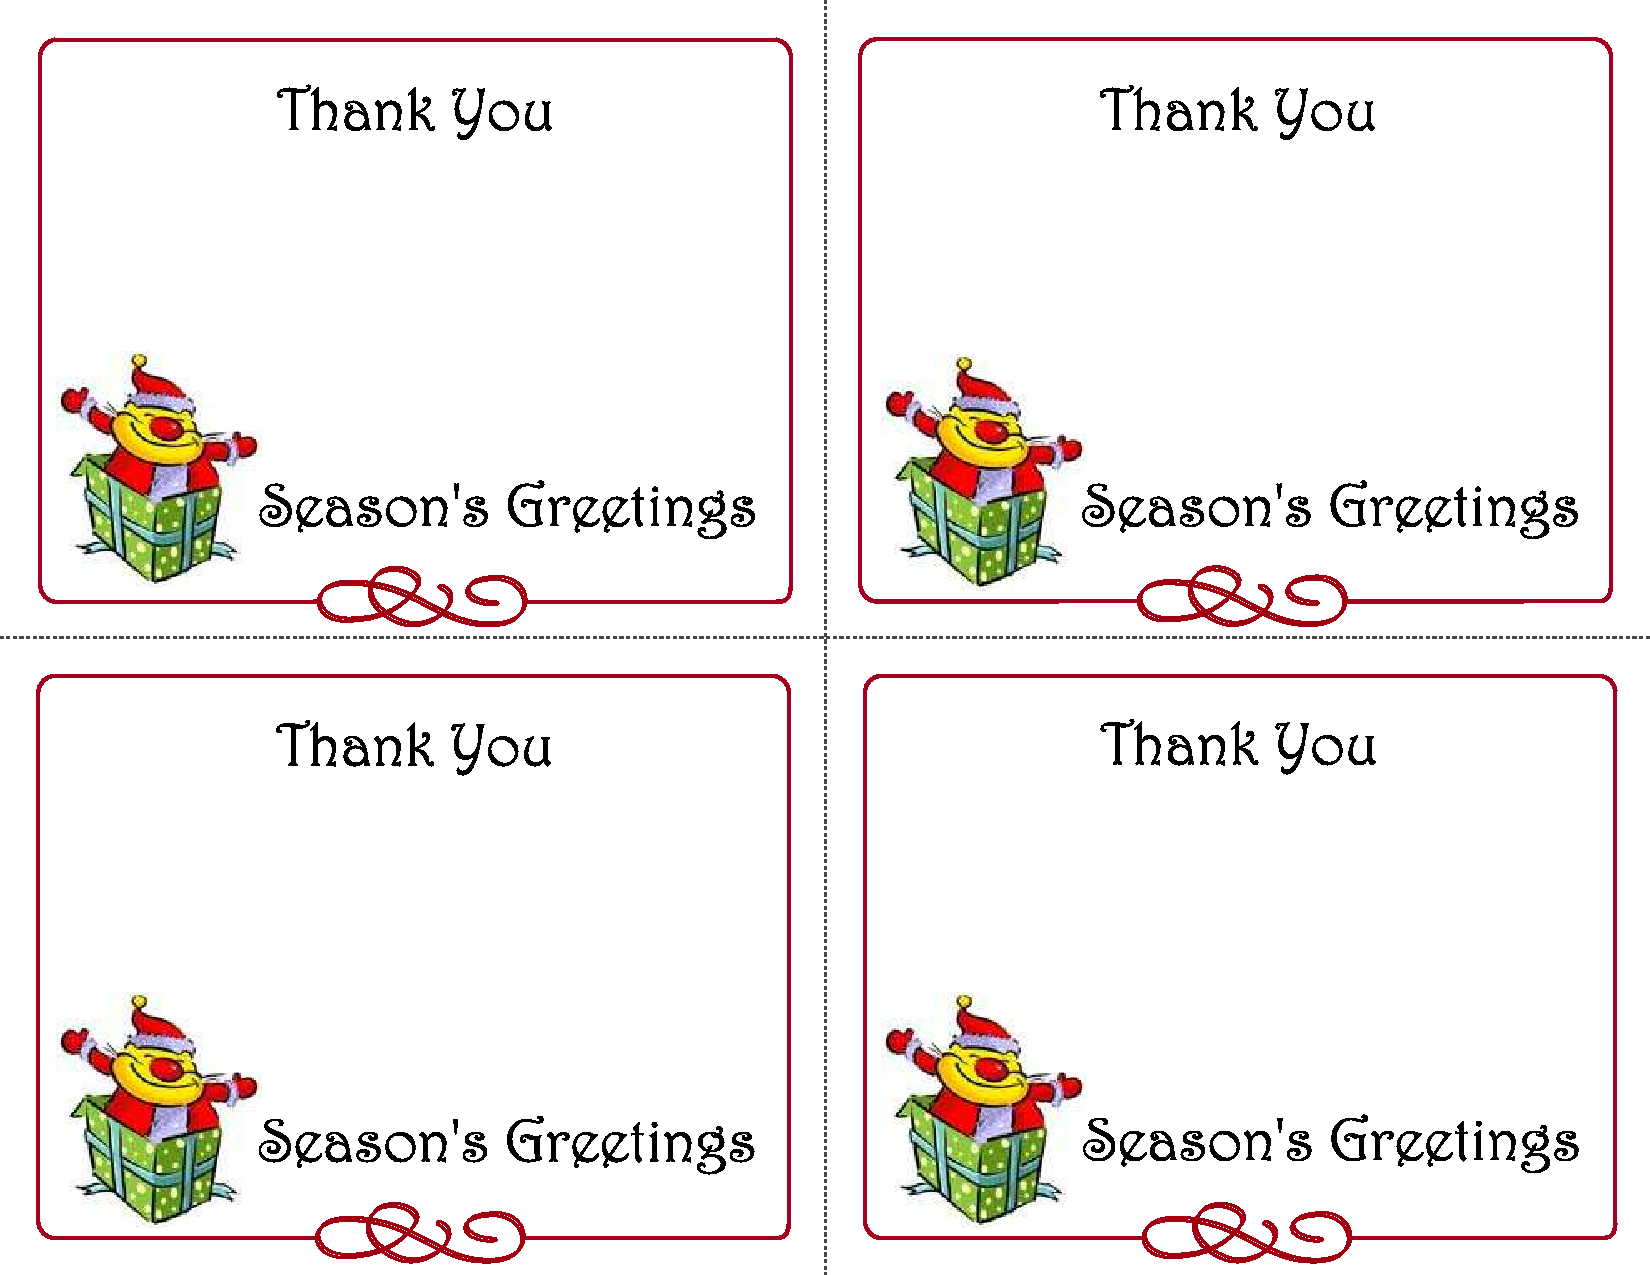 image relating to Christmas Thank You Cards Printable Free referred to as Cost-free Printable Xmas Card Templates For Small children - Xmas